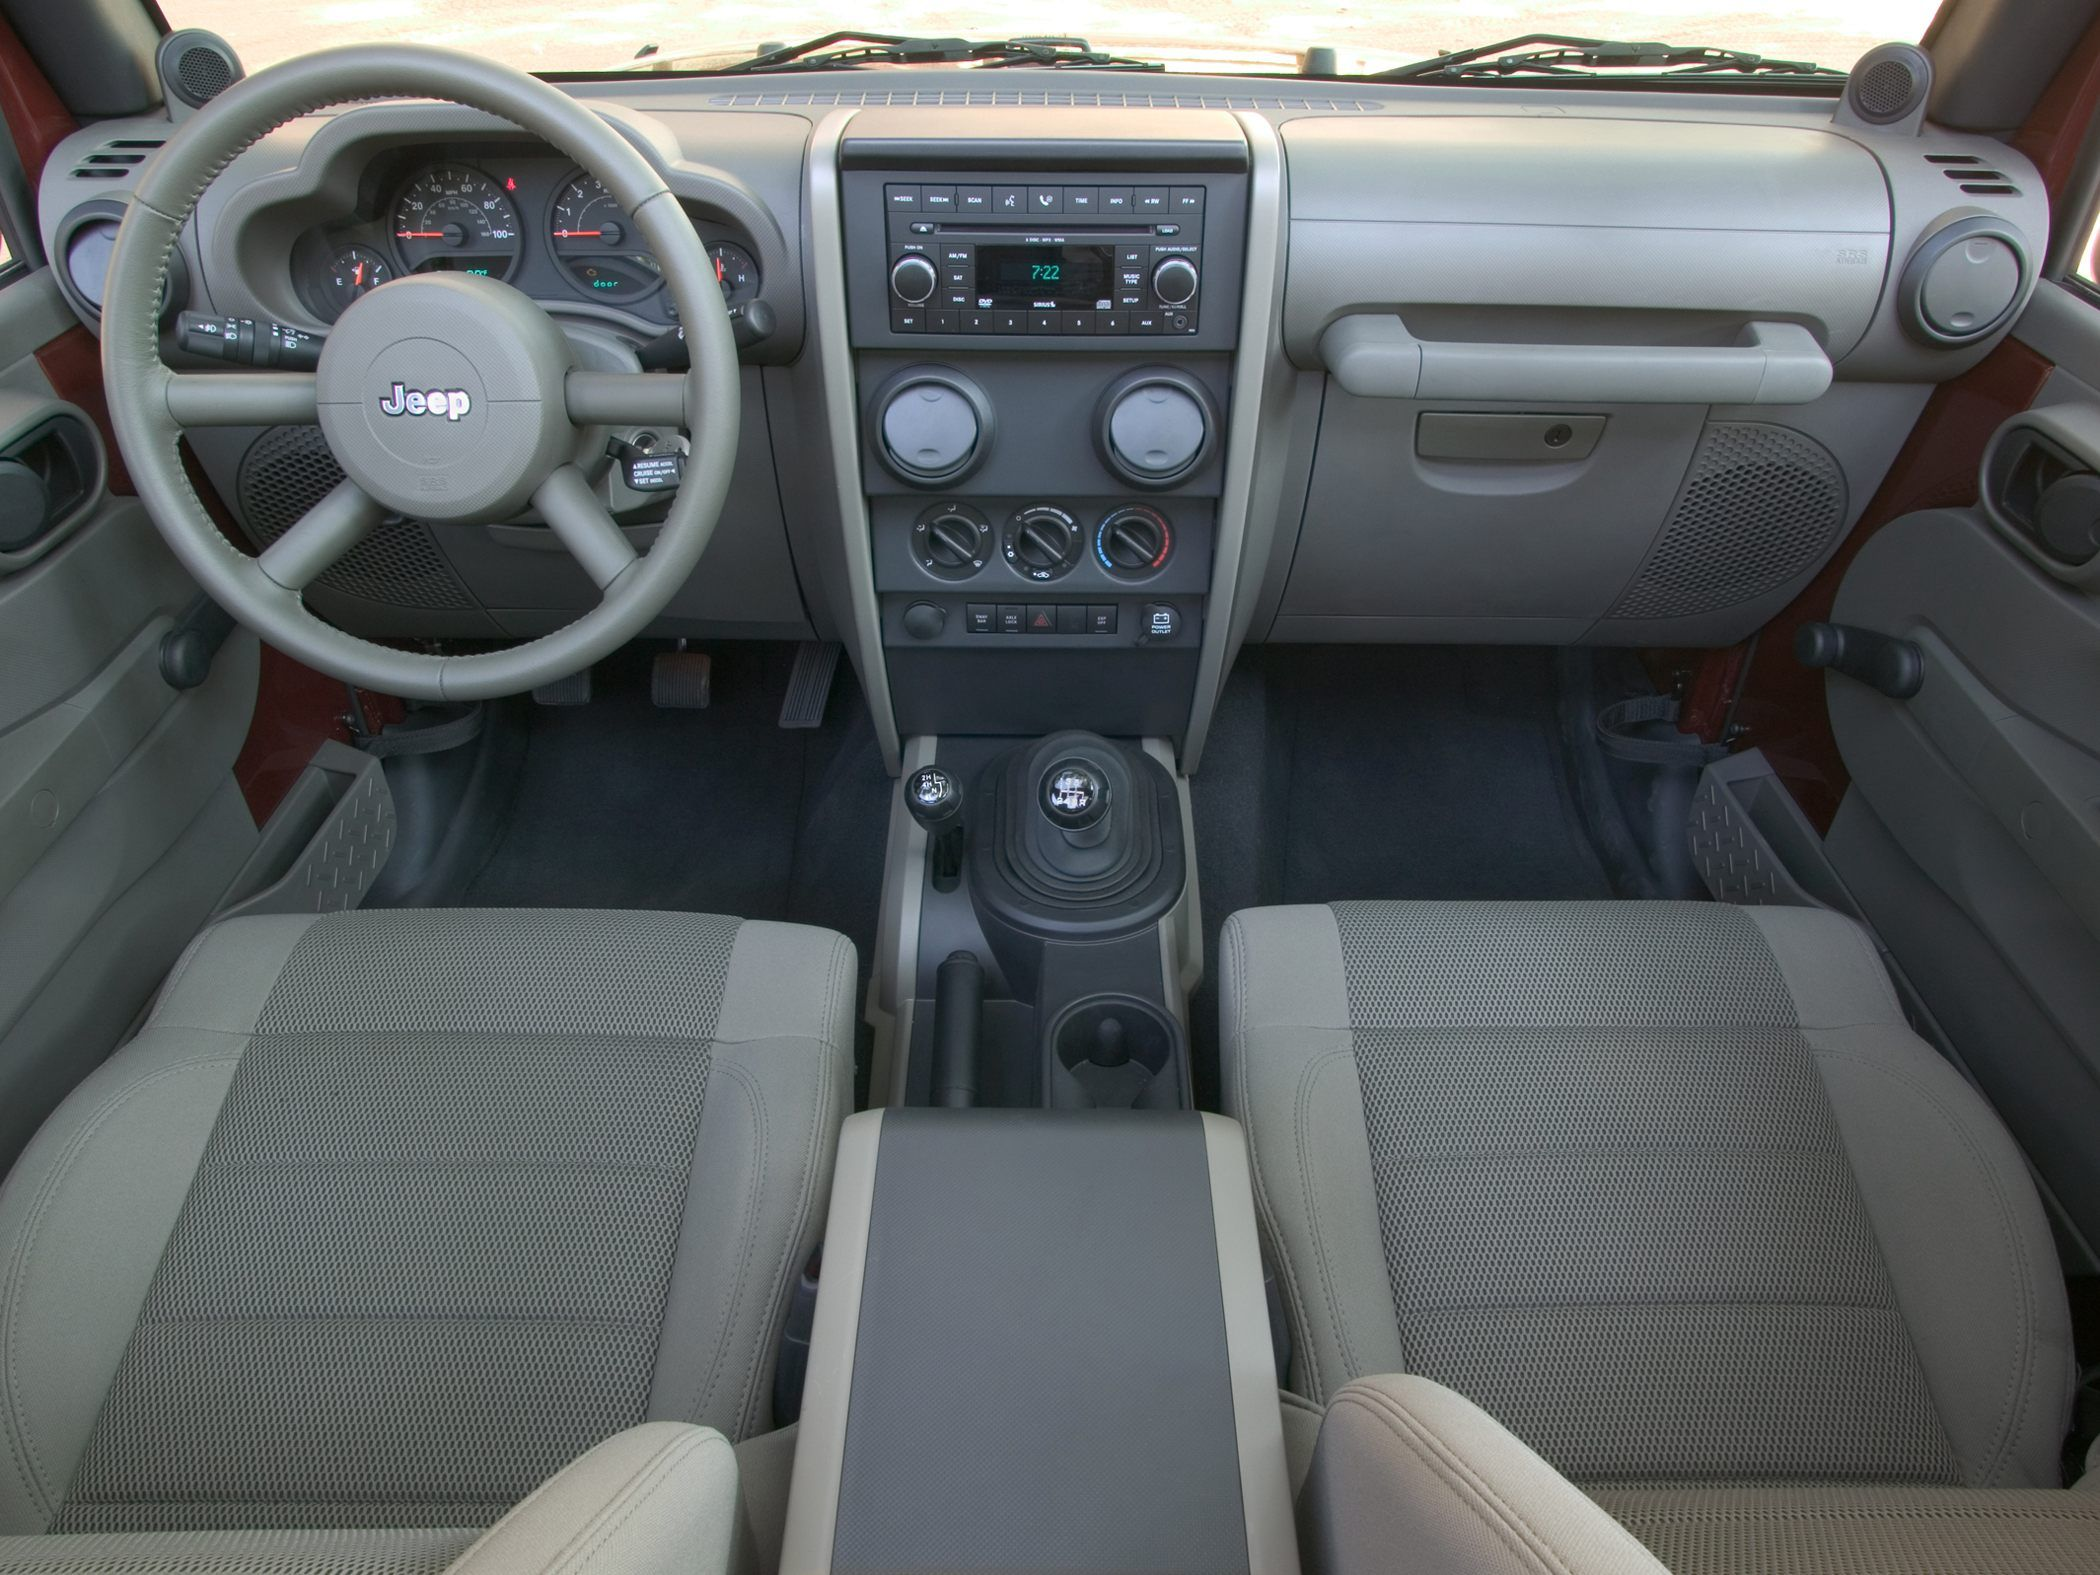 Jeep Wrangler Interior 2010 Omg I Love This Sooo Much Jeep